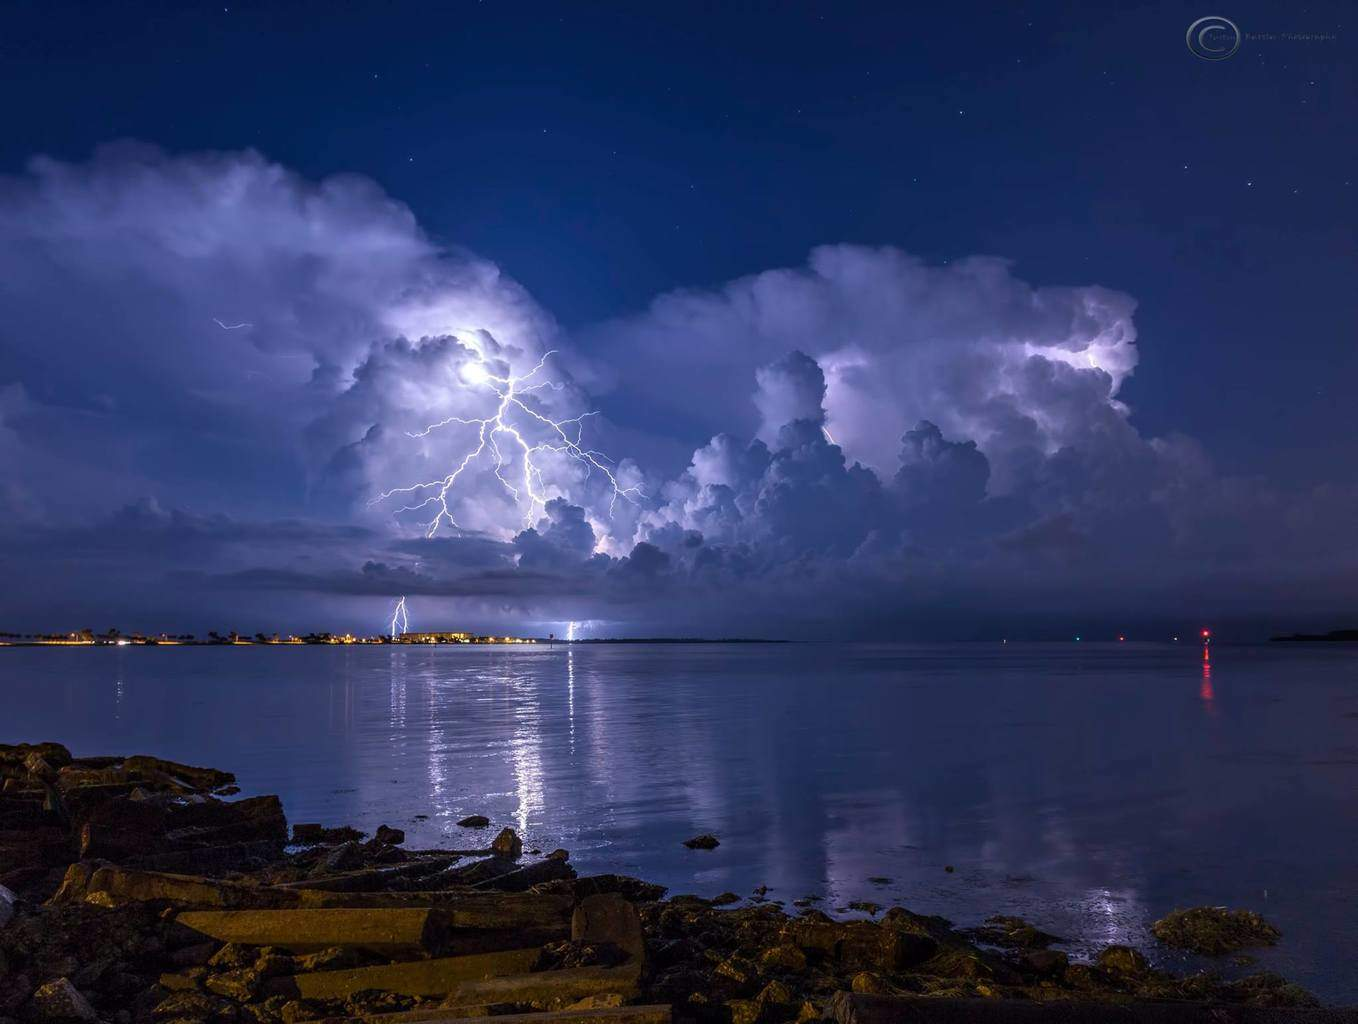 A single frame from a time lapse I shot Wednesday night of two storms from the Dunedin Causeway overlooking Honeymoon Island State Park in Florida